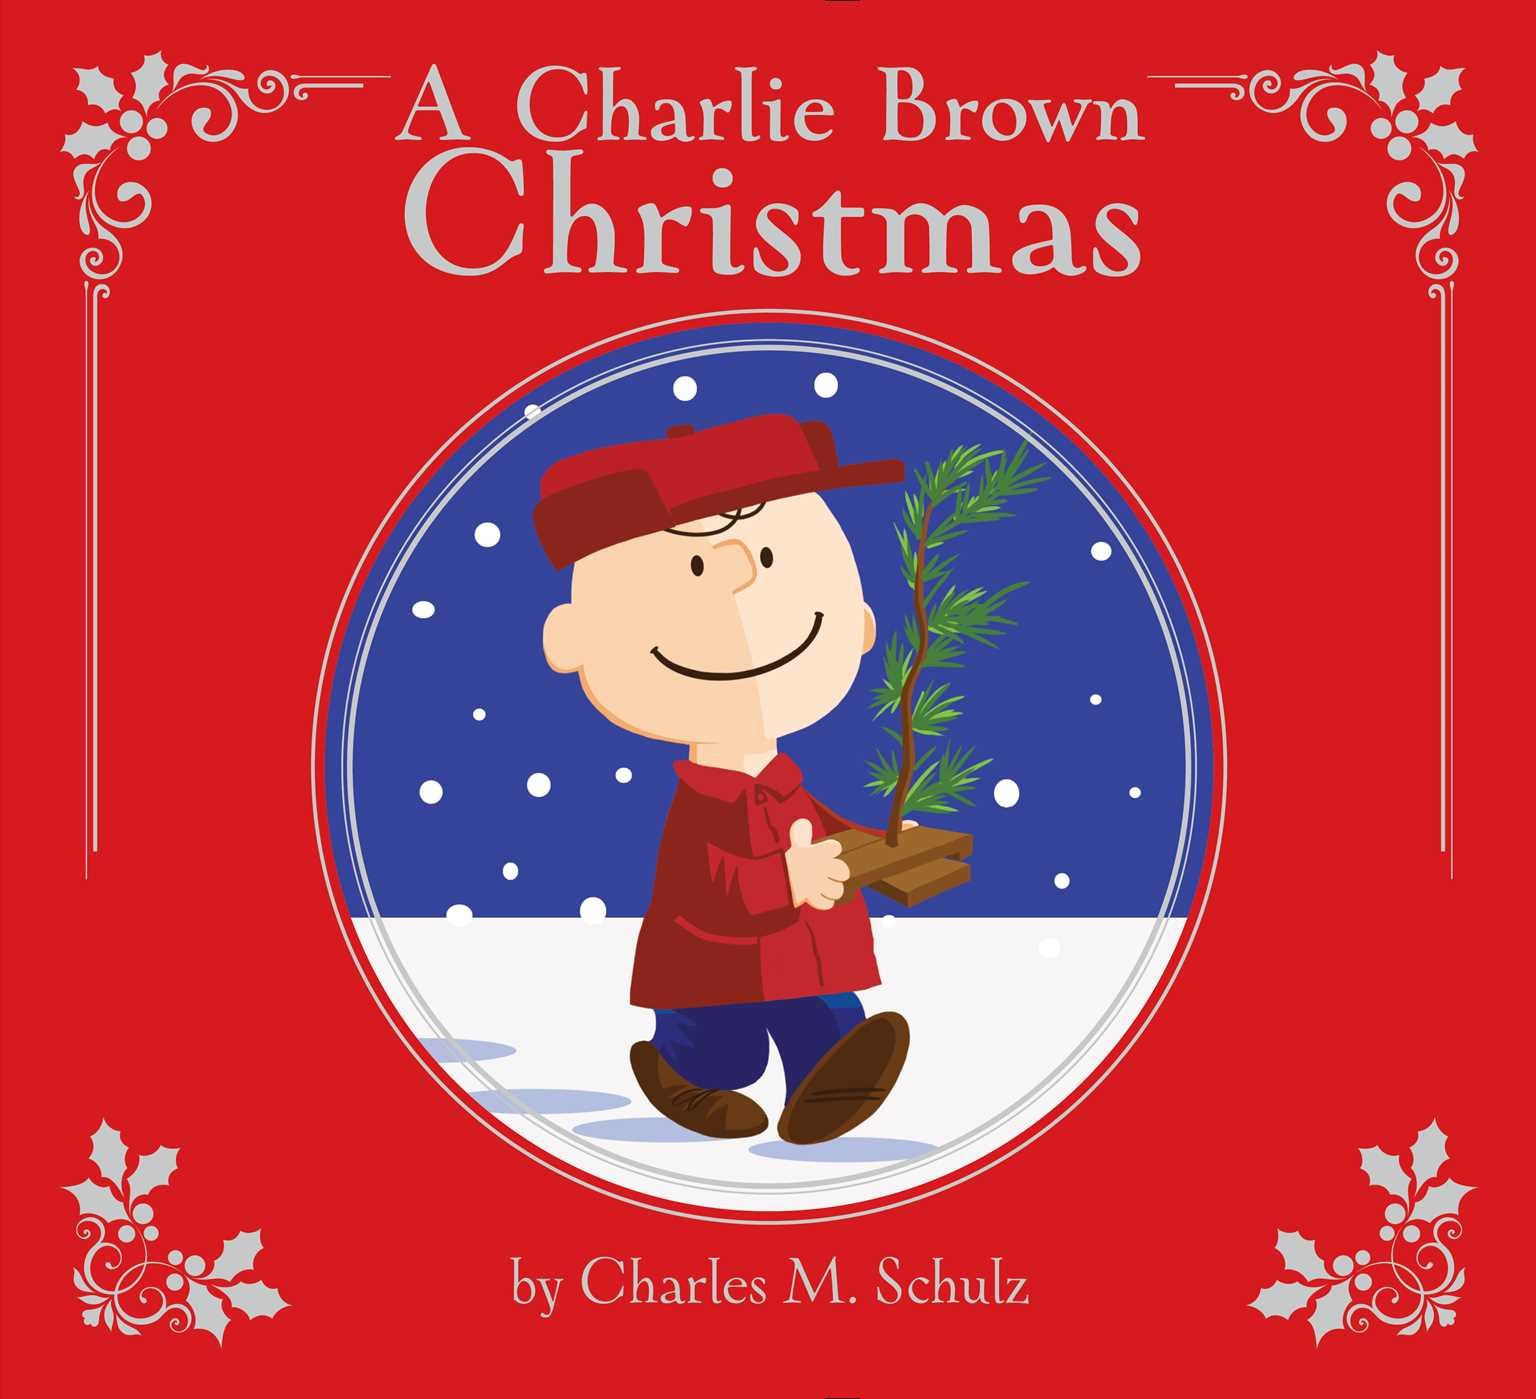 The Best Christmas Picture Books  - A Charlie Brown Christmas.jpg